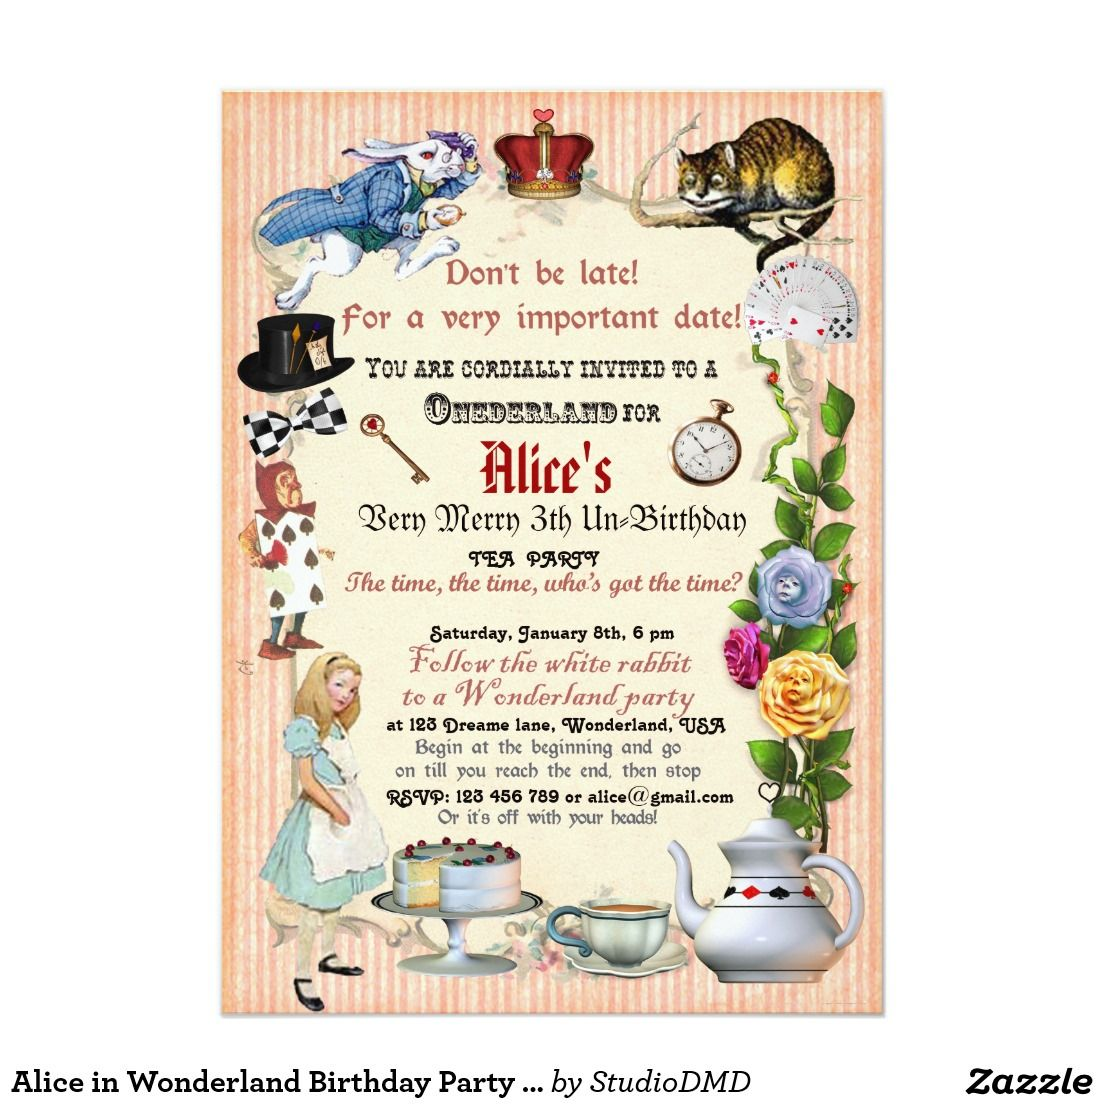 in Wonderland Birthday Party Invitation